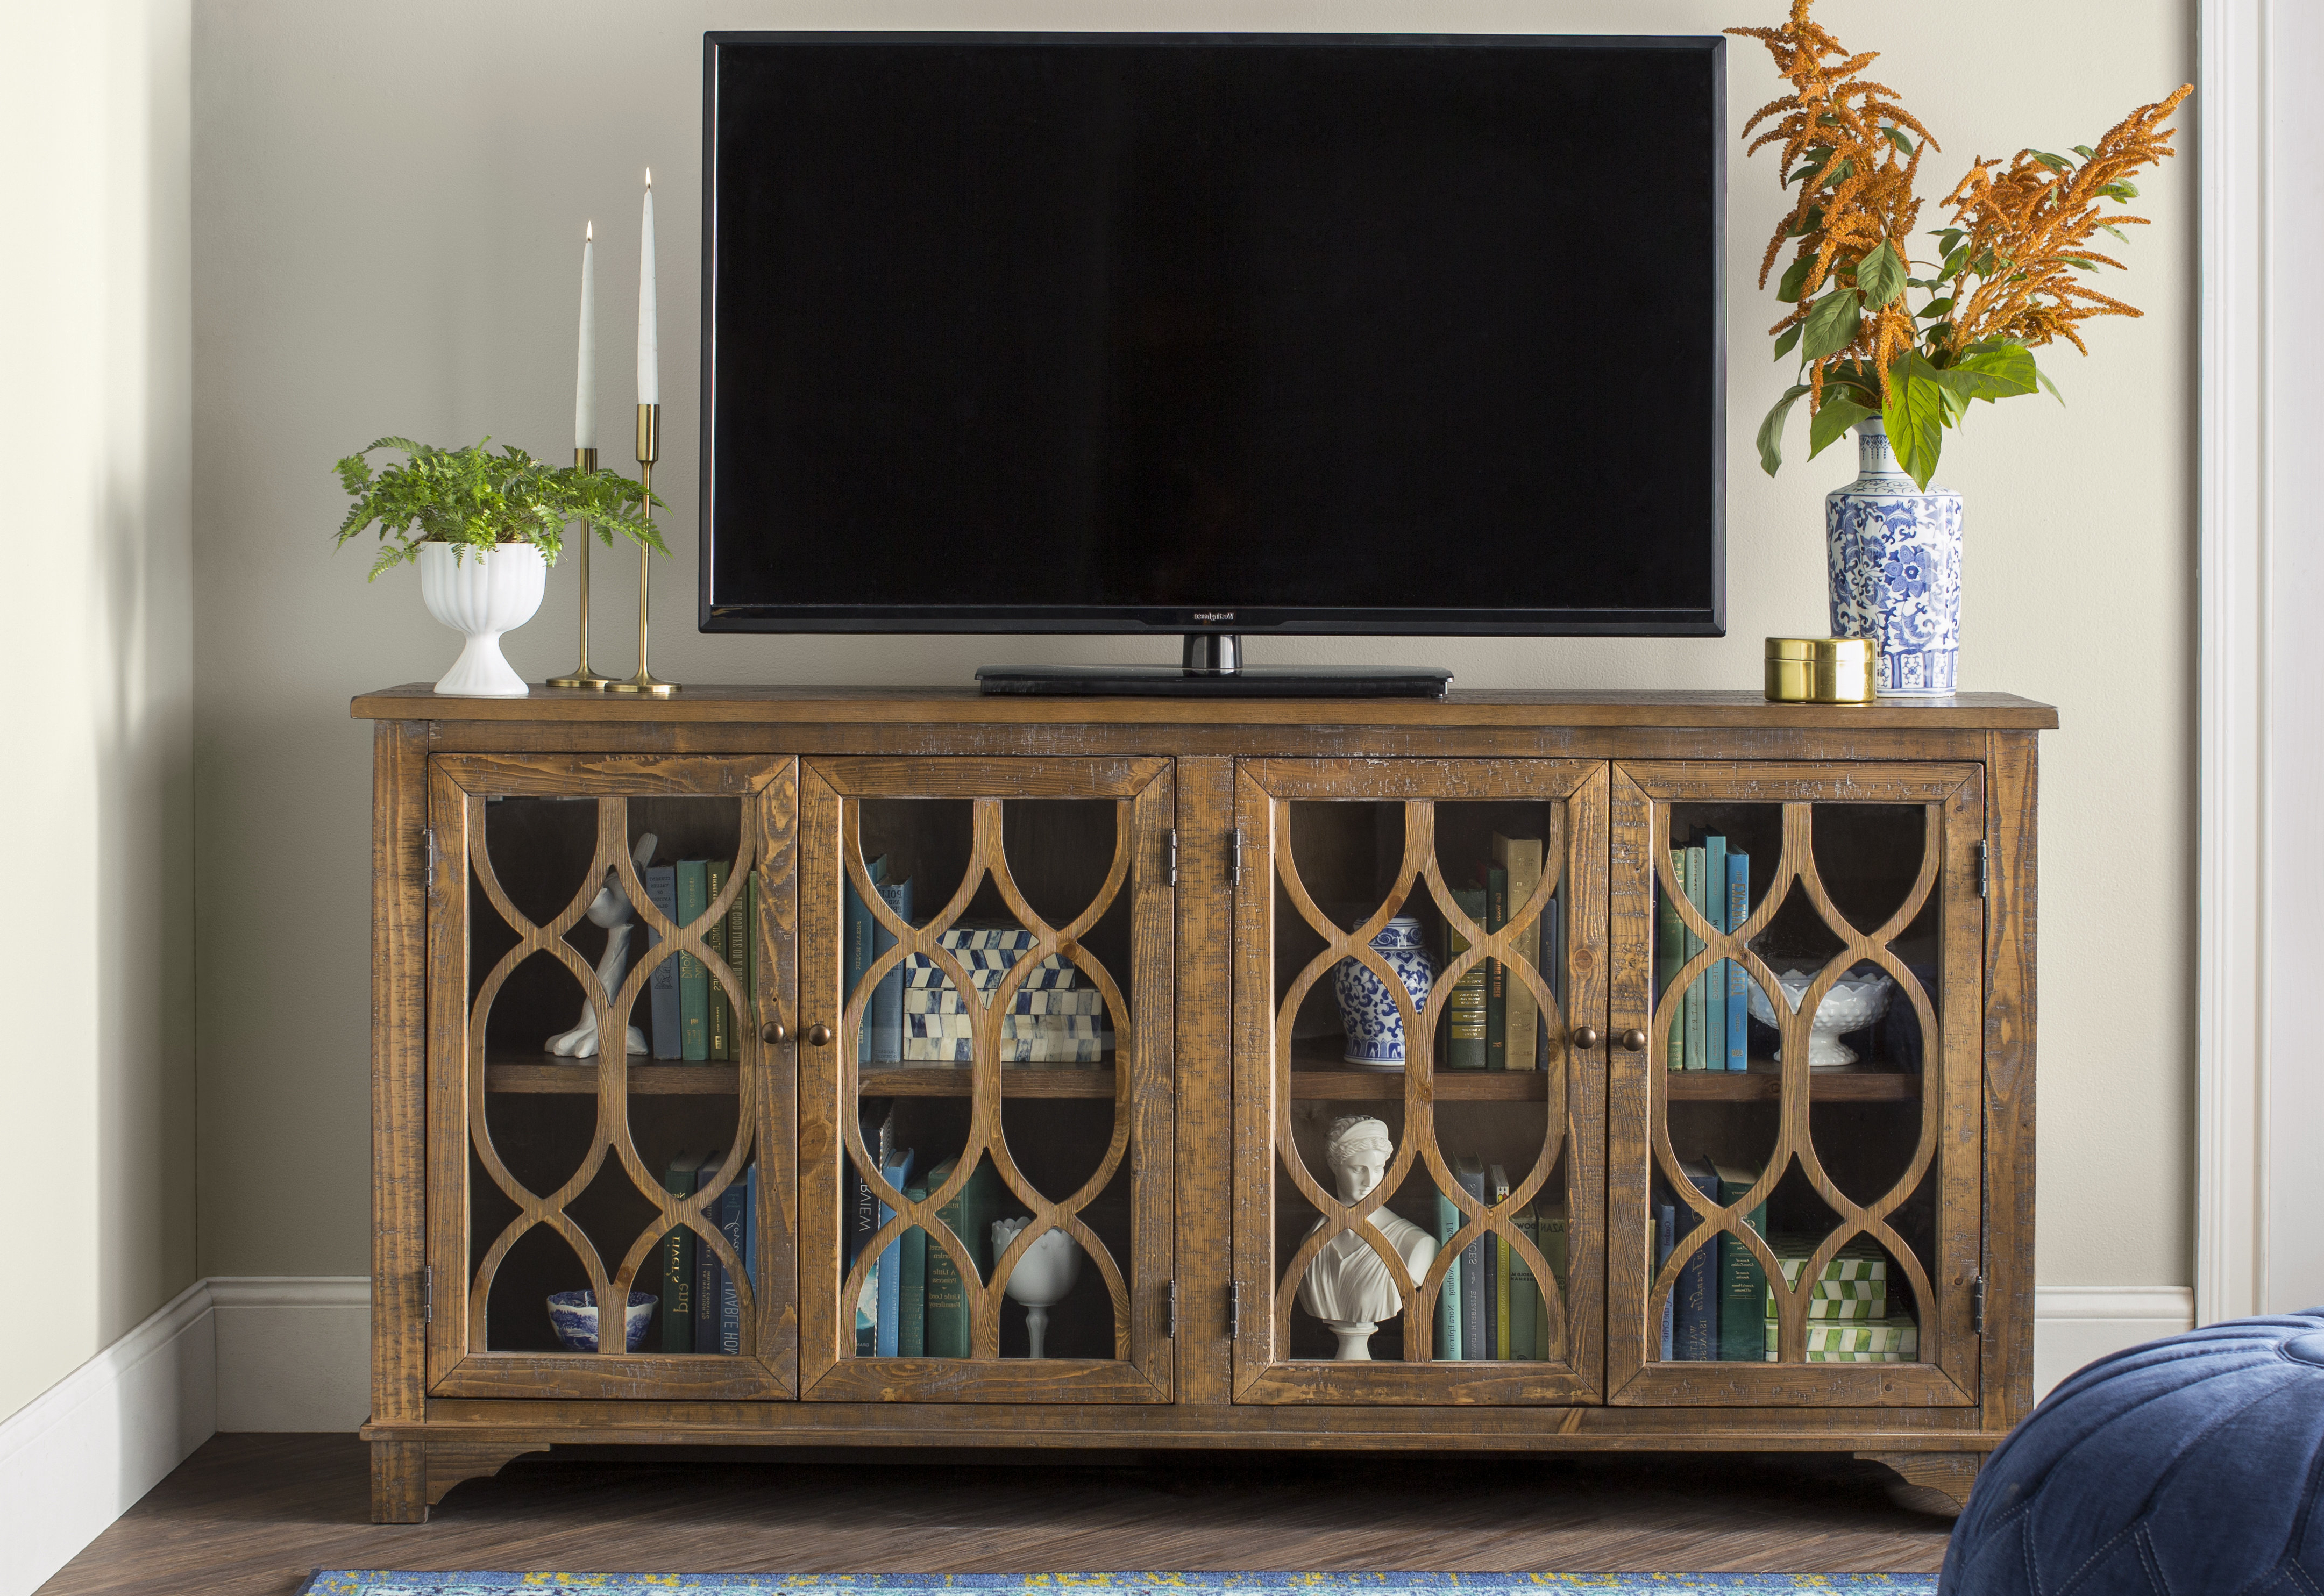 70 Inches And Larger Tv Stands | Joss & Main Intended For Walton 72 Inch Tv Stands (View 18 of 20)